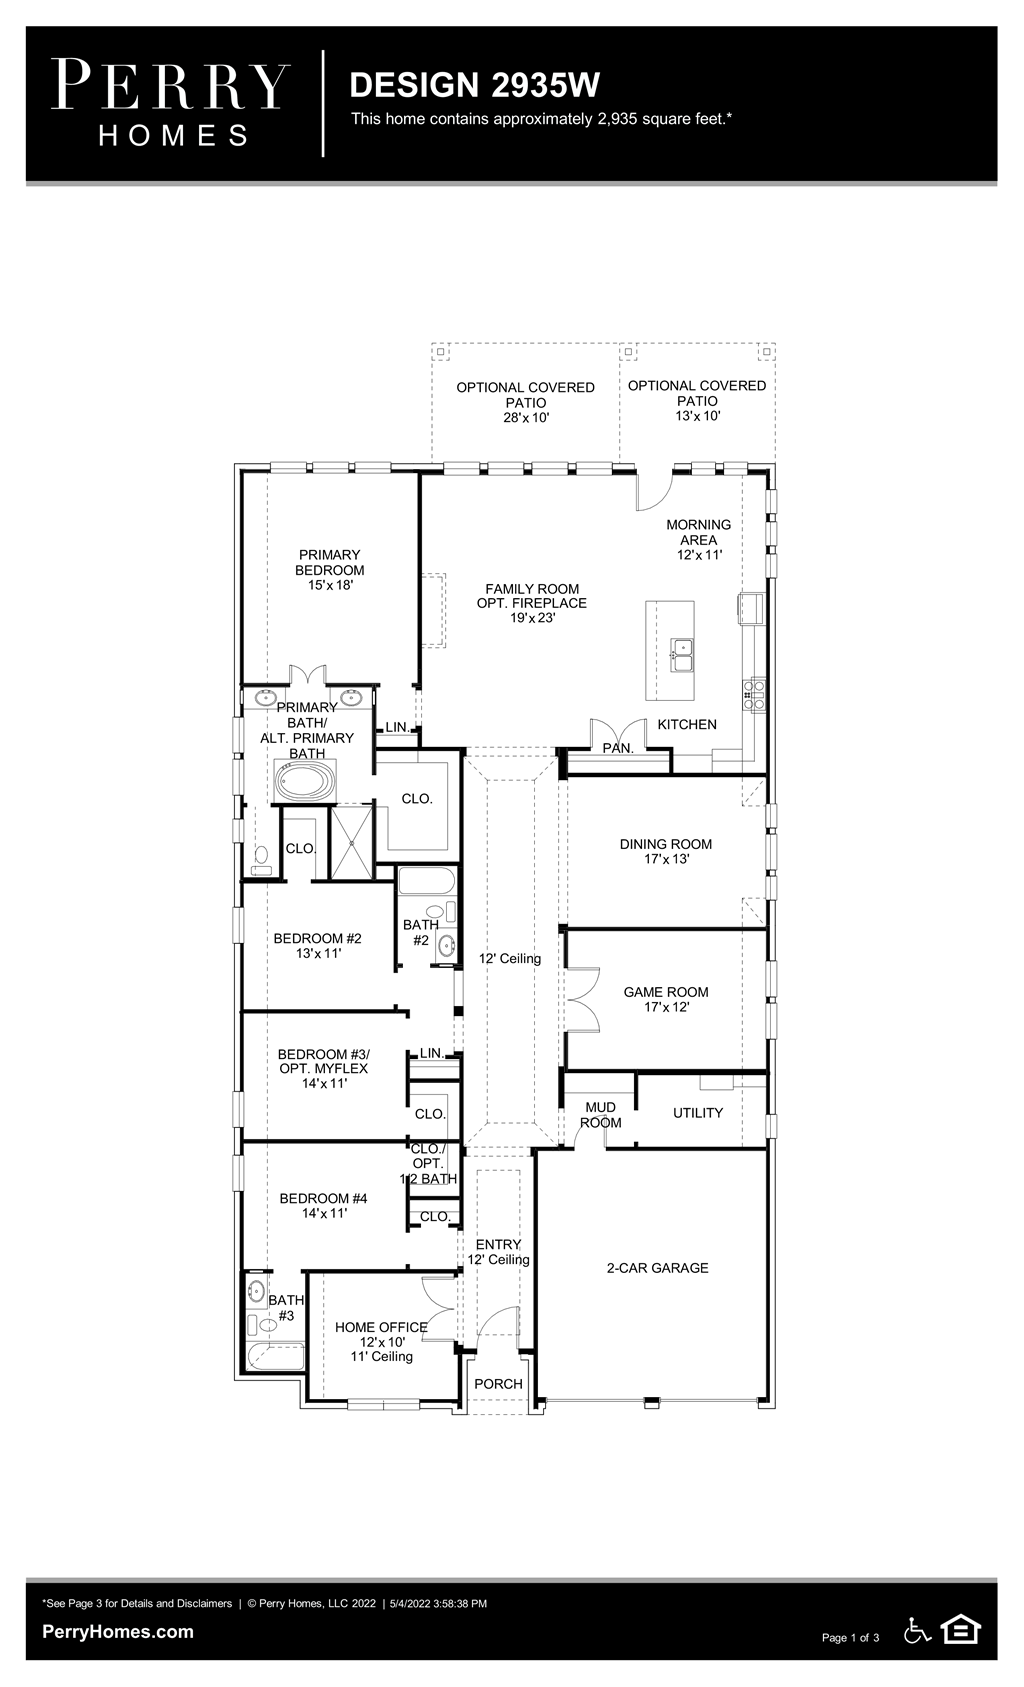 Floor Plan for 2935W